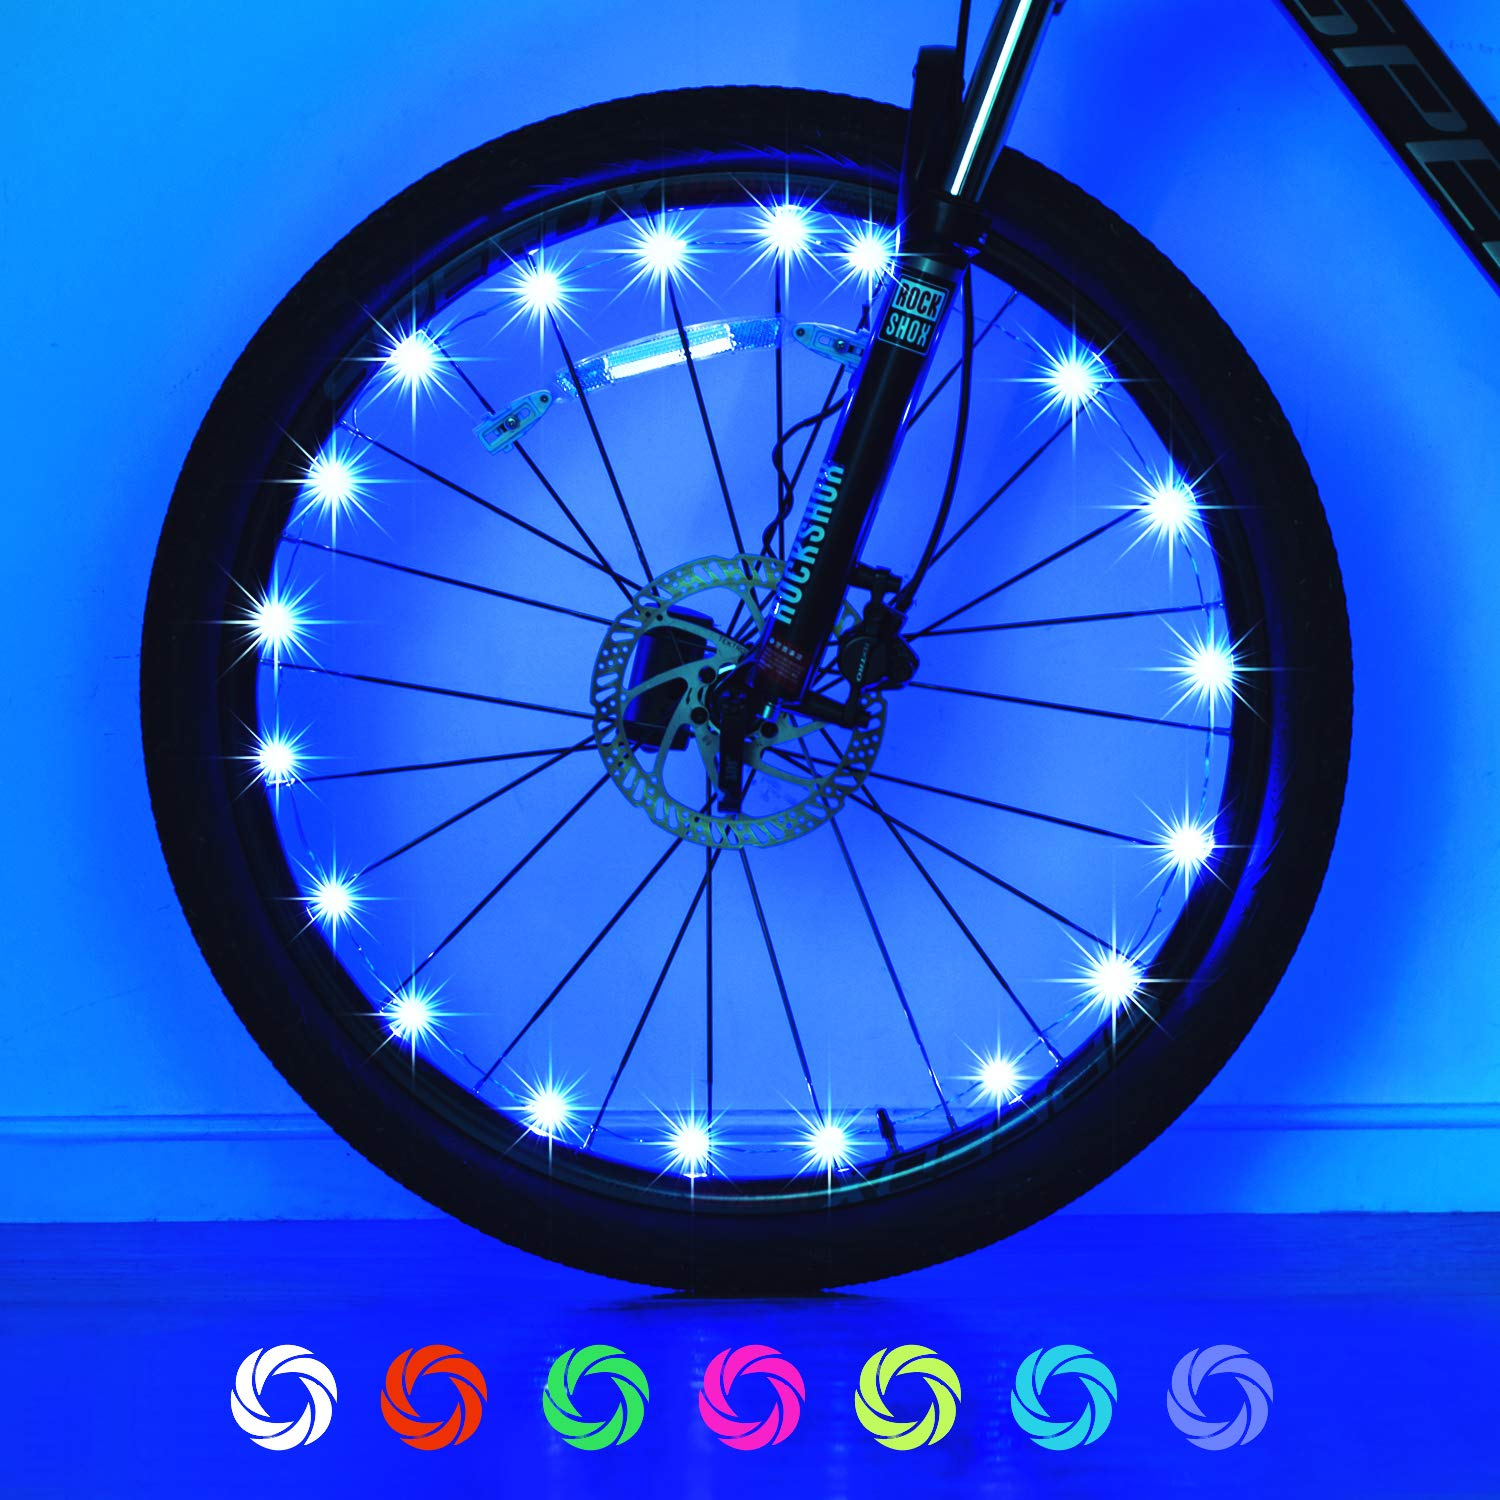 Exwell Bike Wheel Lights, 7 Colors in 1 Bike Lights,Safety at Night,Switch 9 Modes LED Bike Accessories Lights, USB Rechargeable 1 Pack AA Battery 2 Pack